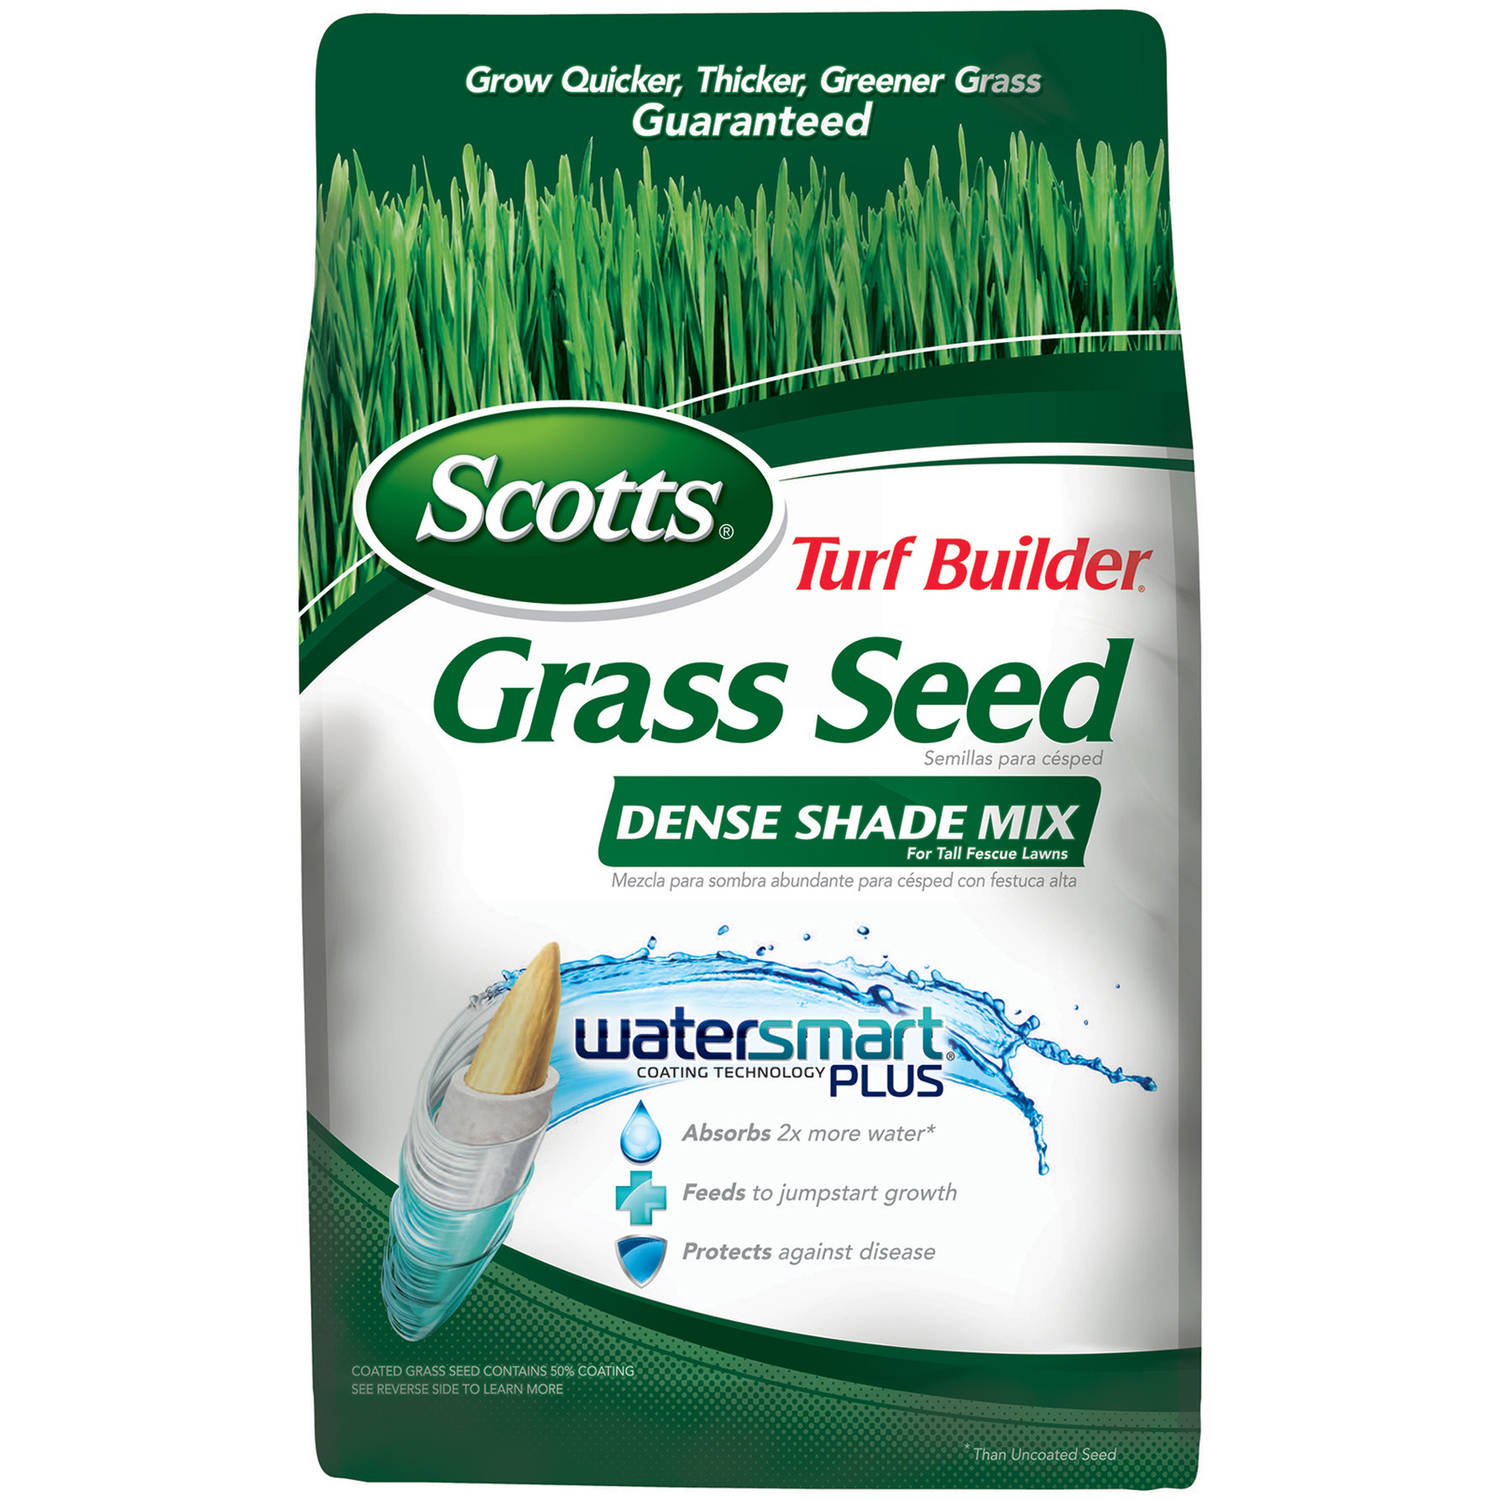 Scotts Turf Builder Dense Shade Mix for Tall Fescue Lawns, 3 lbs